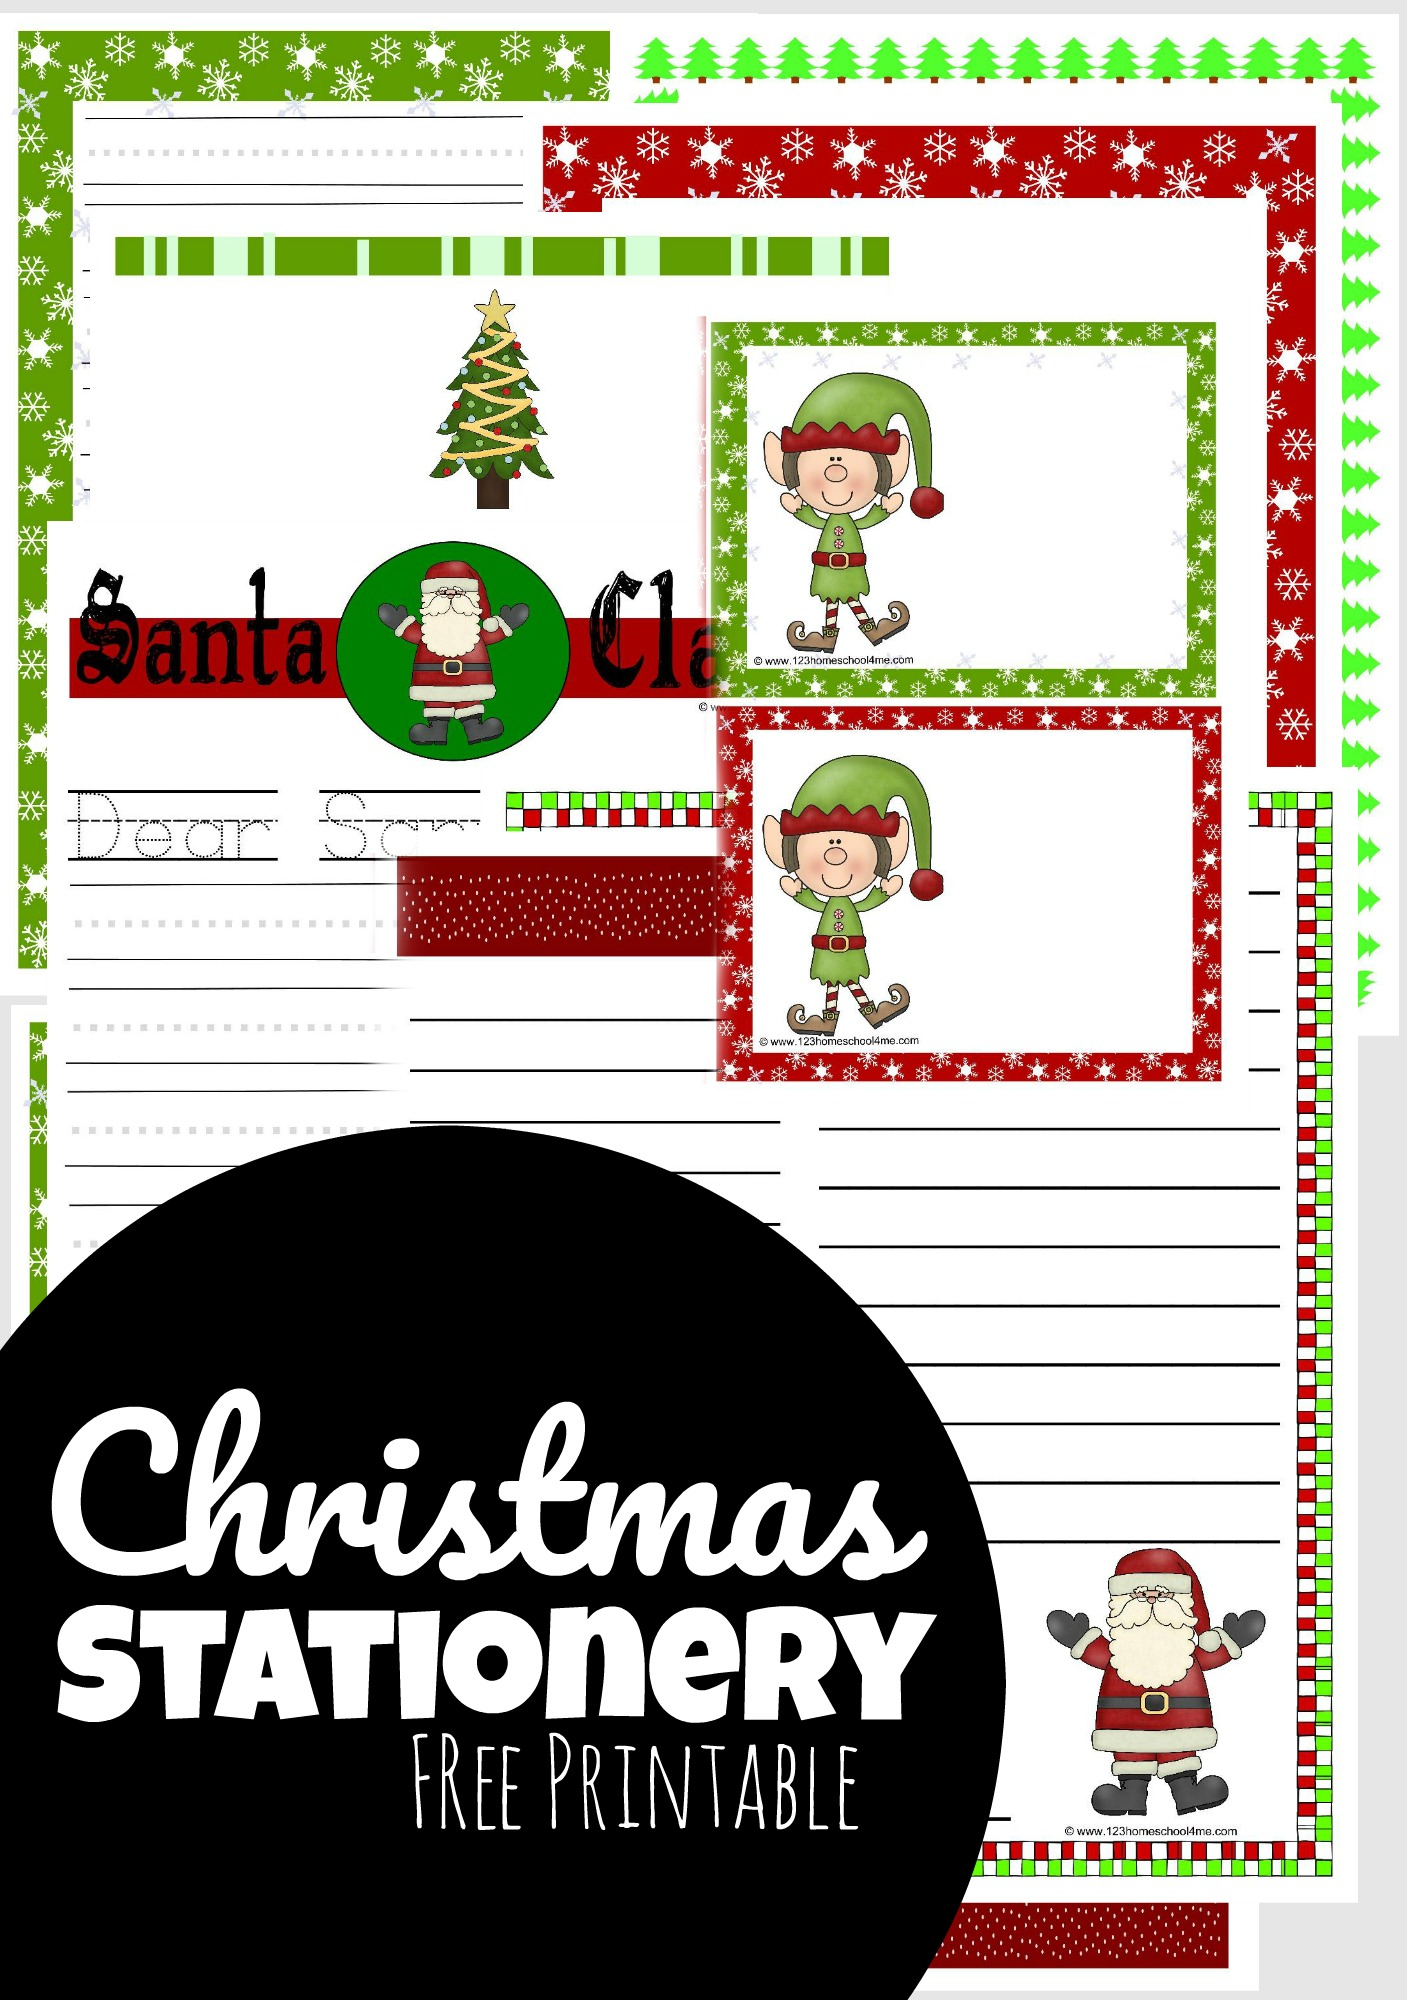 Whether you are are planning in writing a letter to Santa, notes to your children, silly Elf on the shelf notes, work on creative writing prompts in December, write your Christmas letter, or some other use - this huge pack of free printable christmas stationery is super handy! Simply download the pdf file and print the cute Christmas pages.